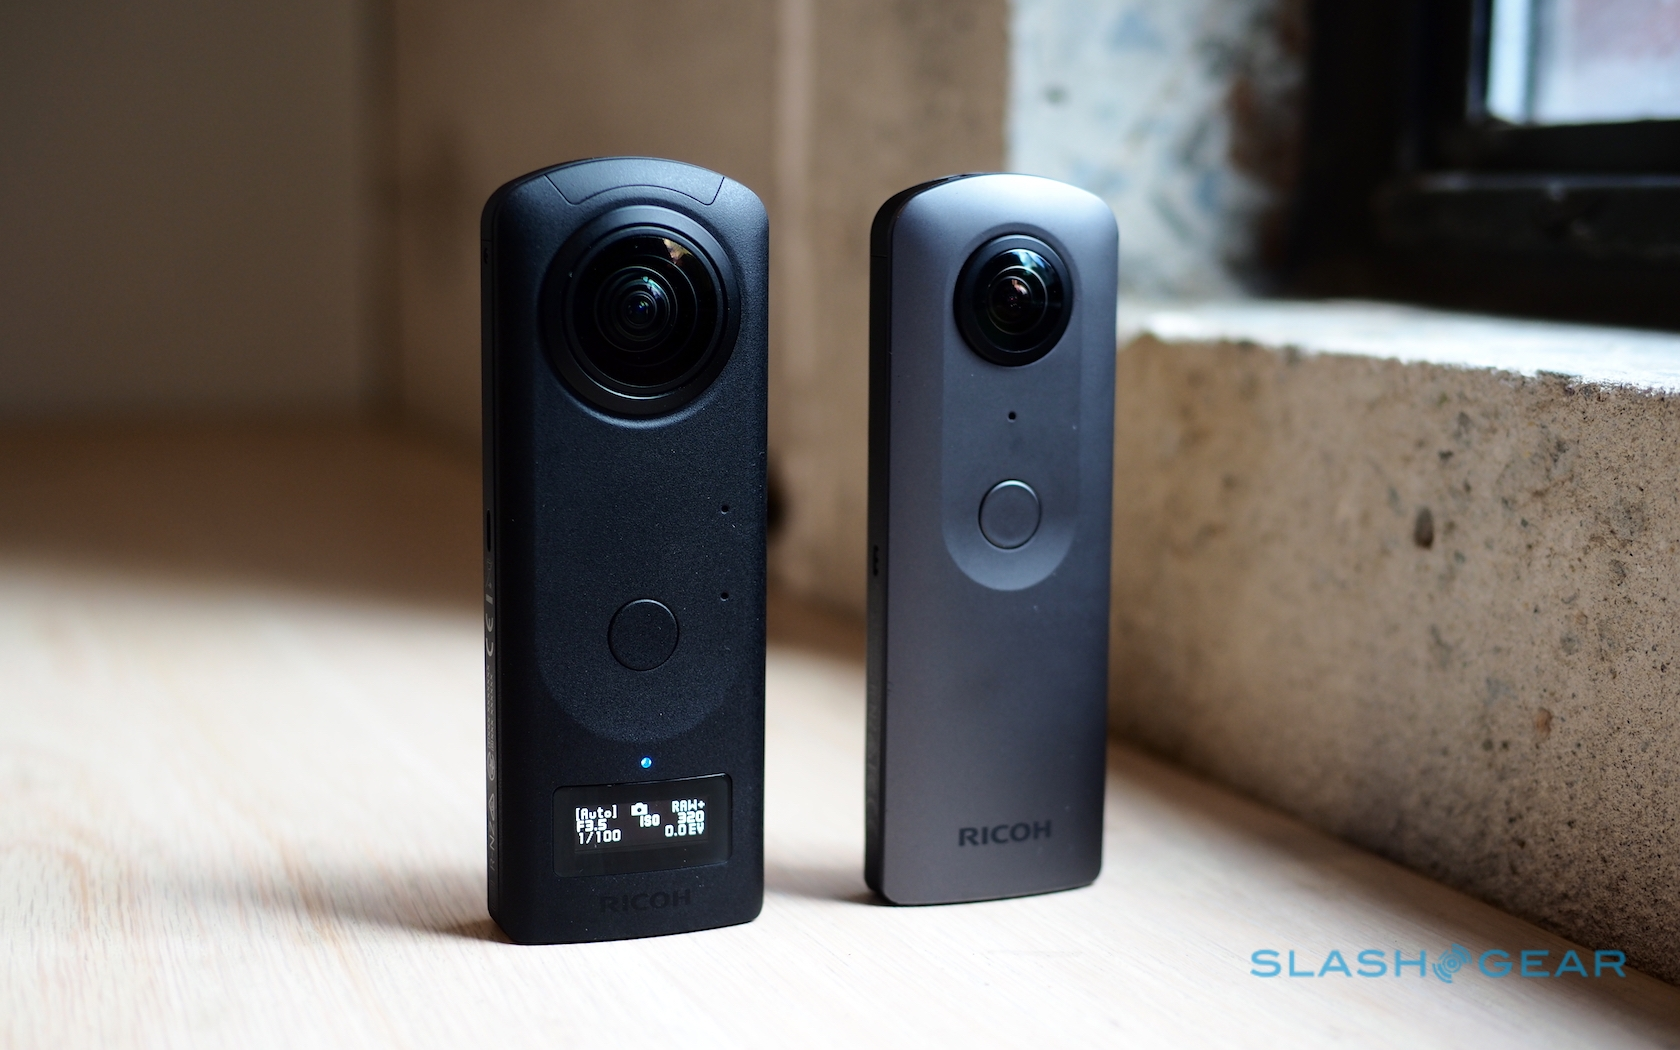 Ricoh Theta Z1 hands-on: A 360 camera with new focus - SlashGear